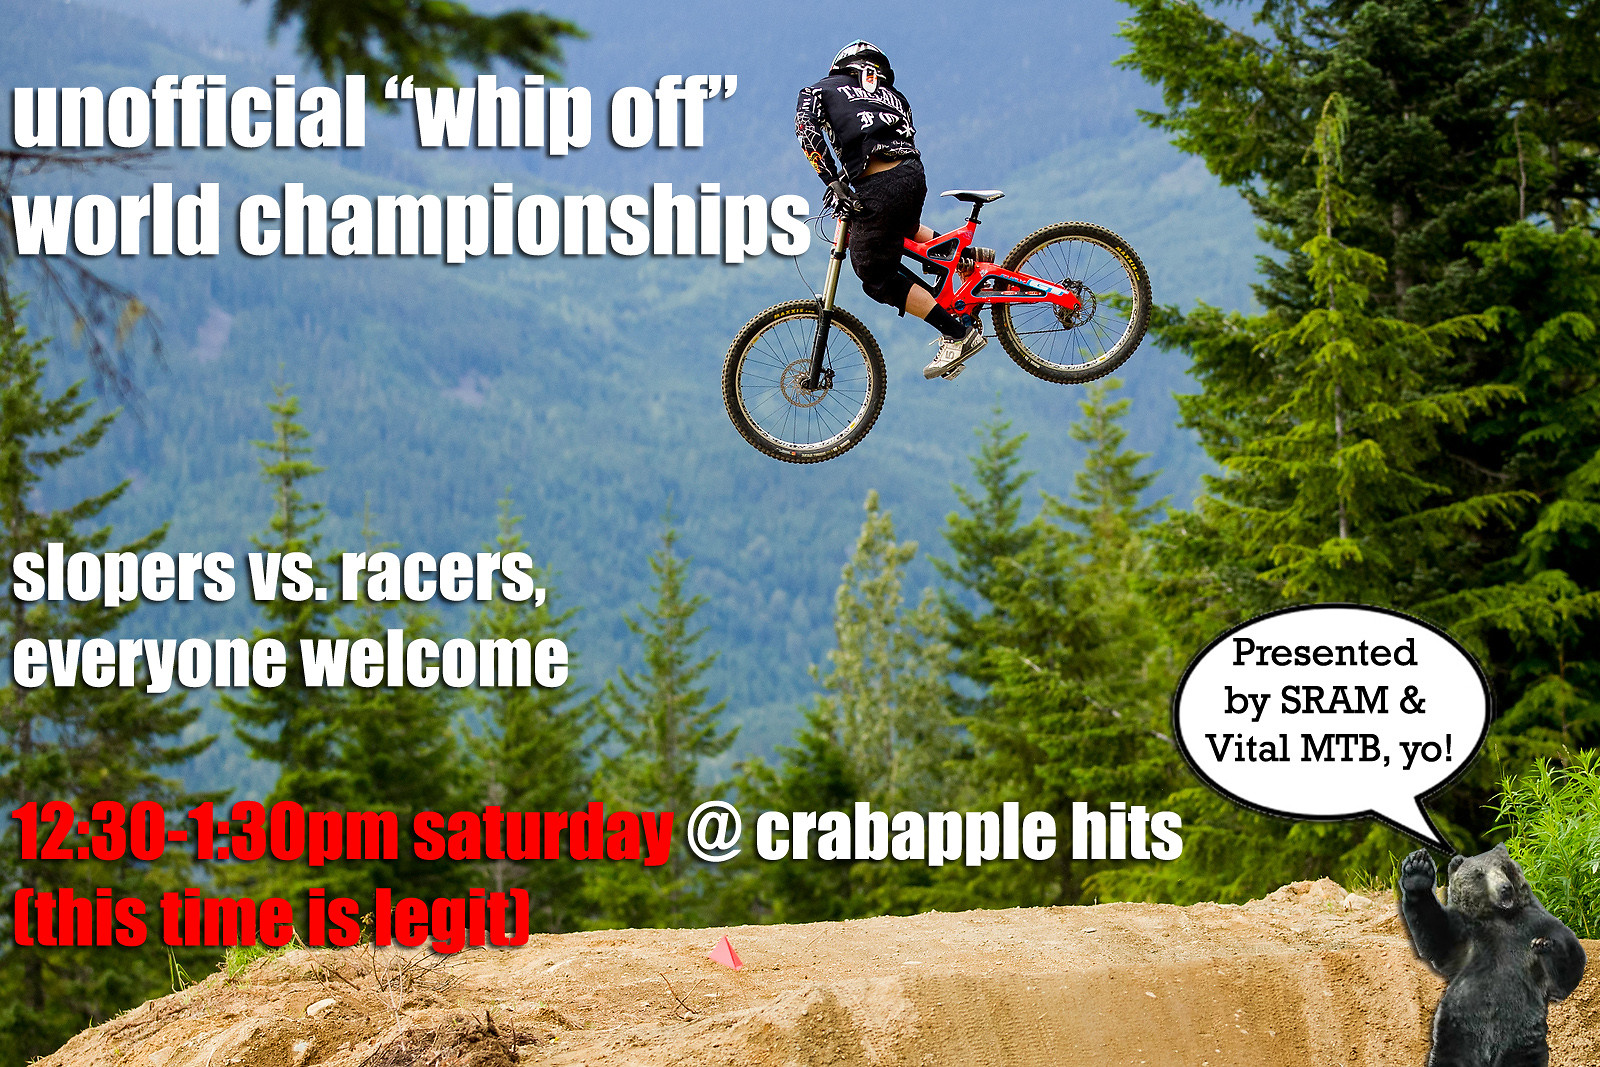 Unofficial Whip Off World Champs - Saturday @ Crabapple Hits - Unofficial